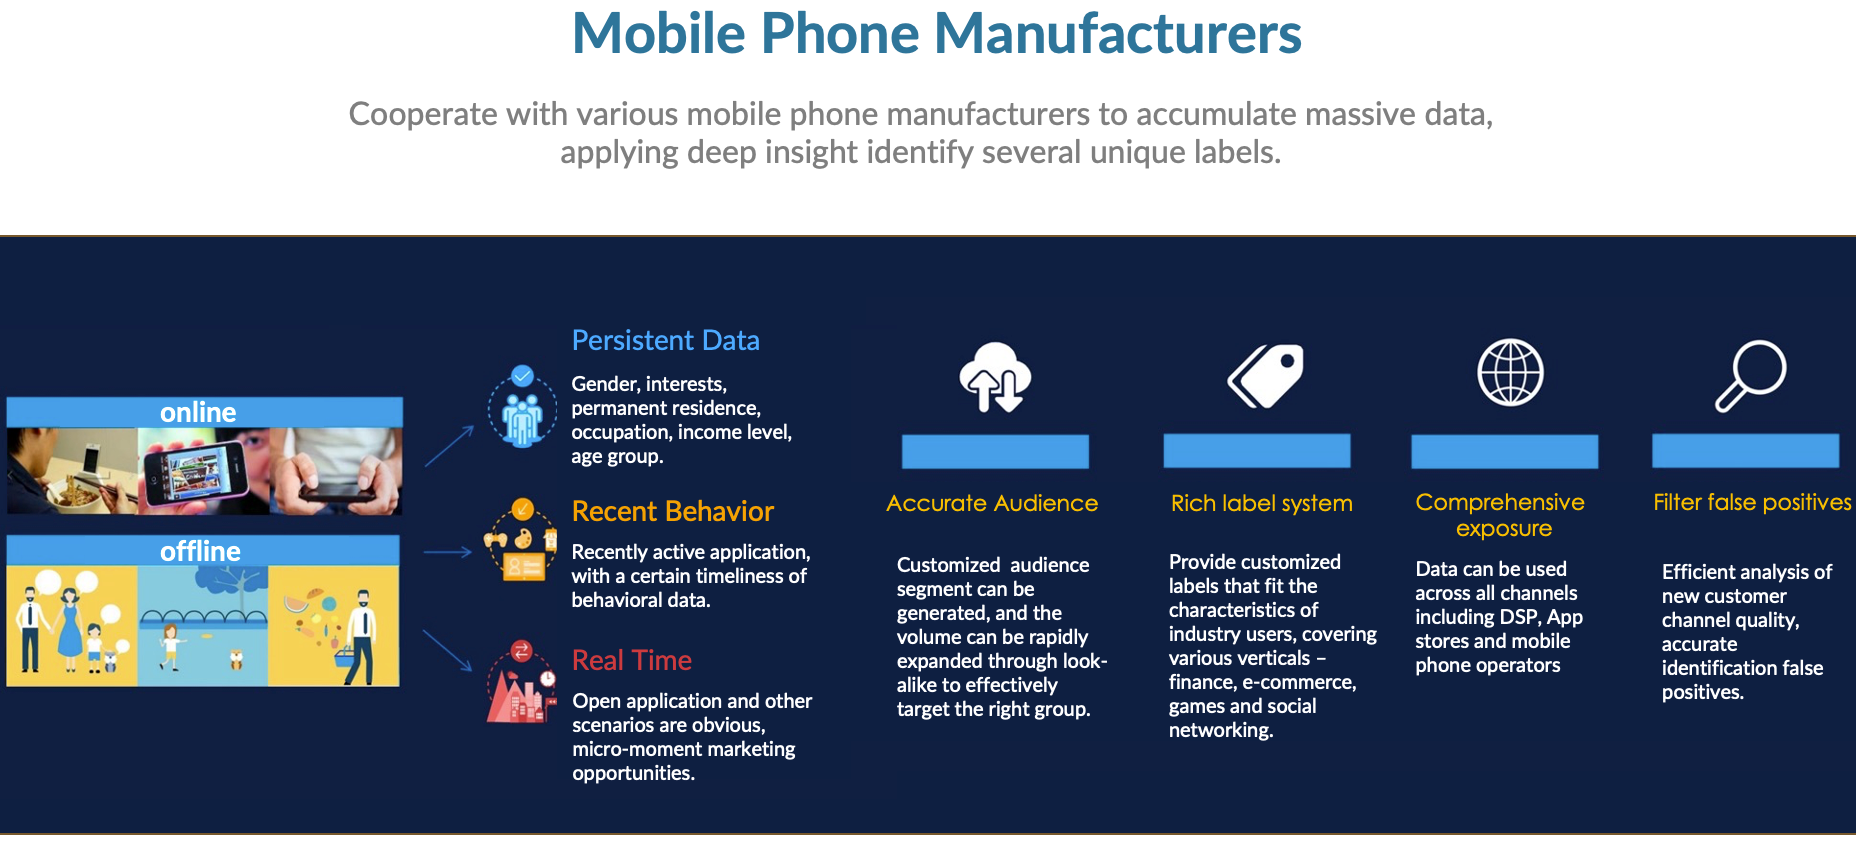 Mobile phone manufacturers